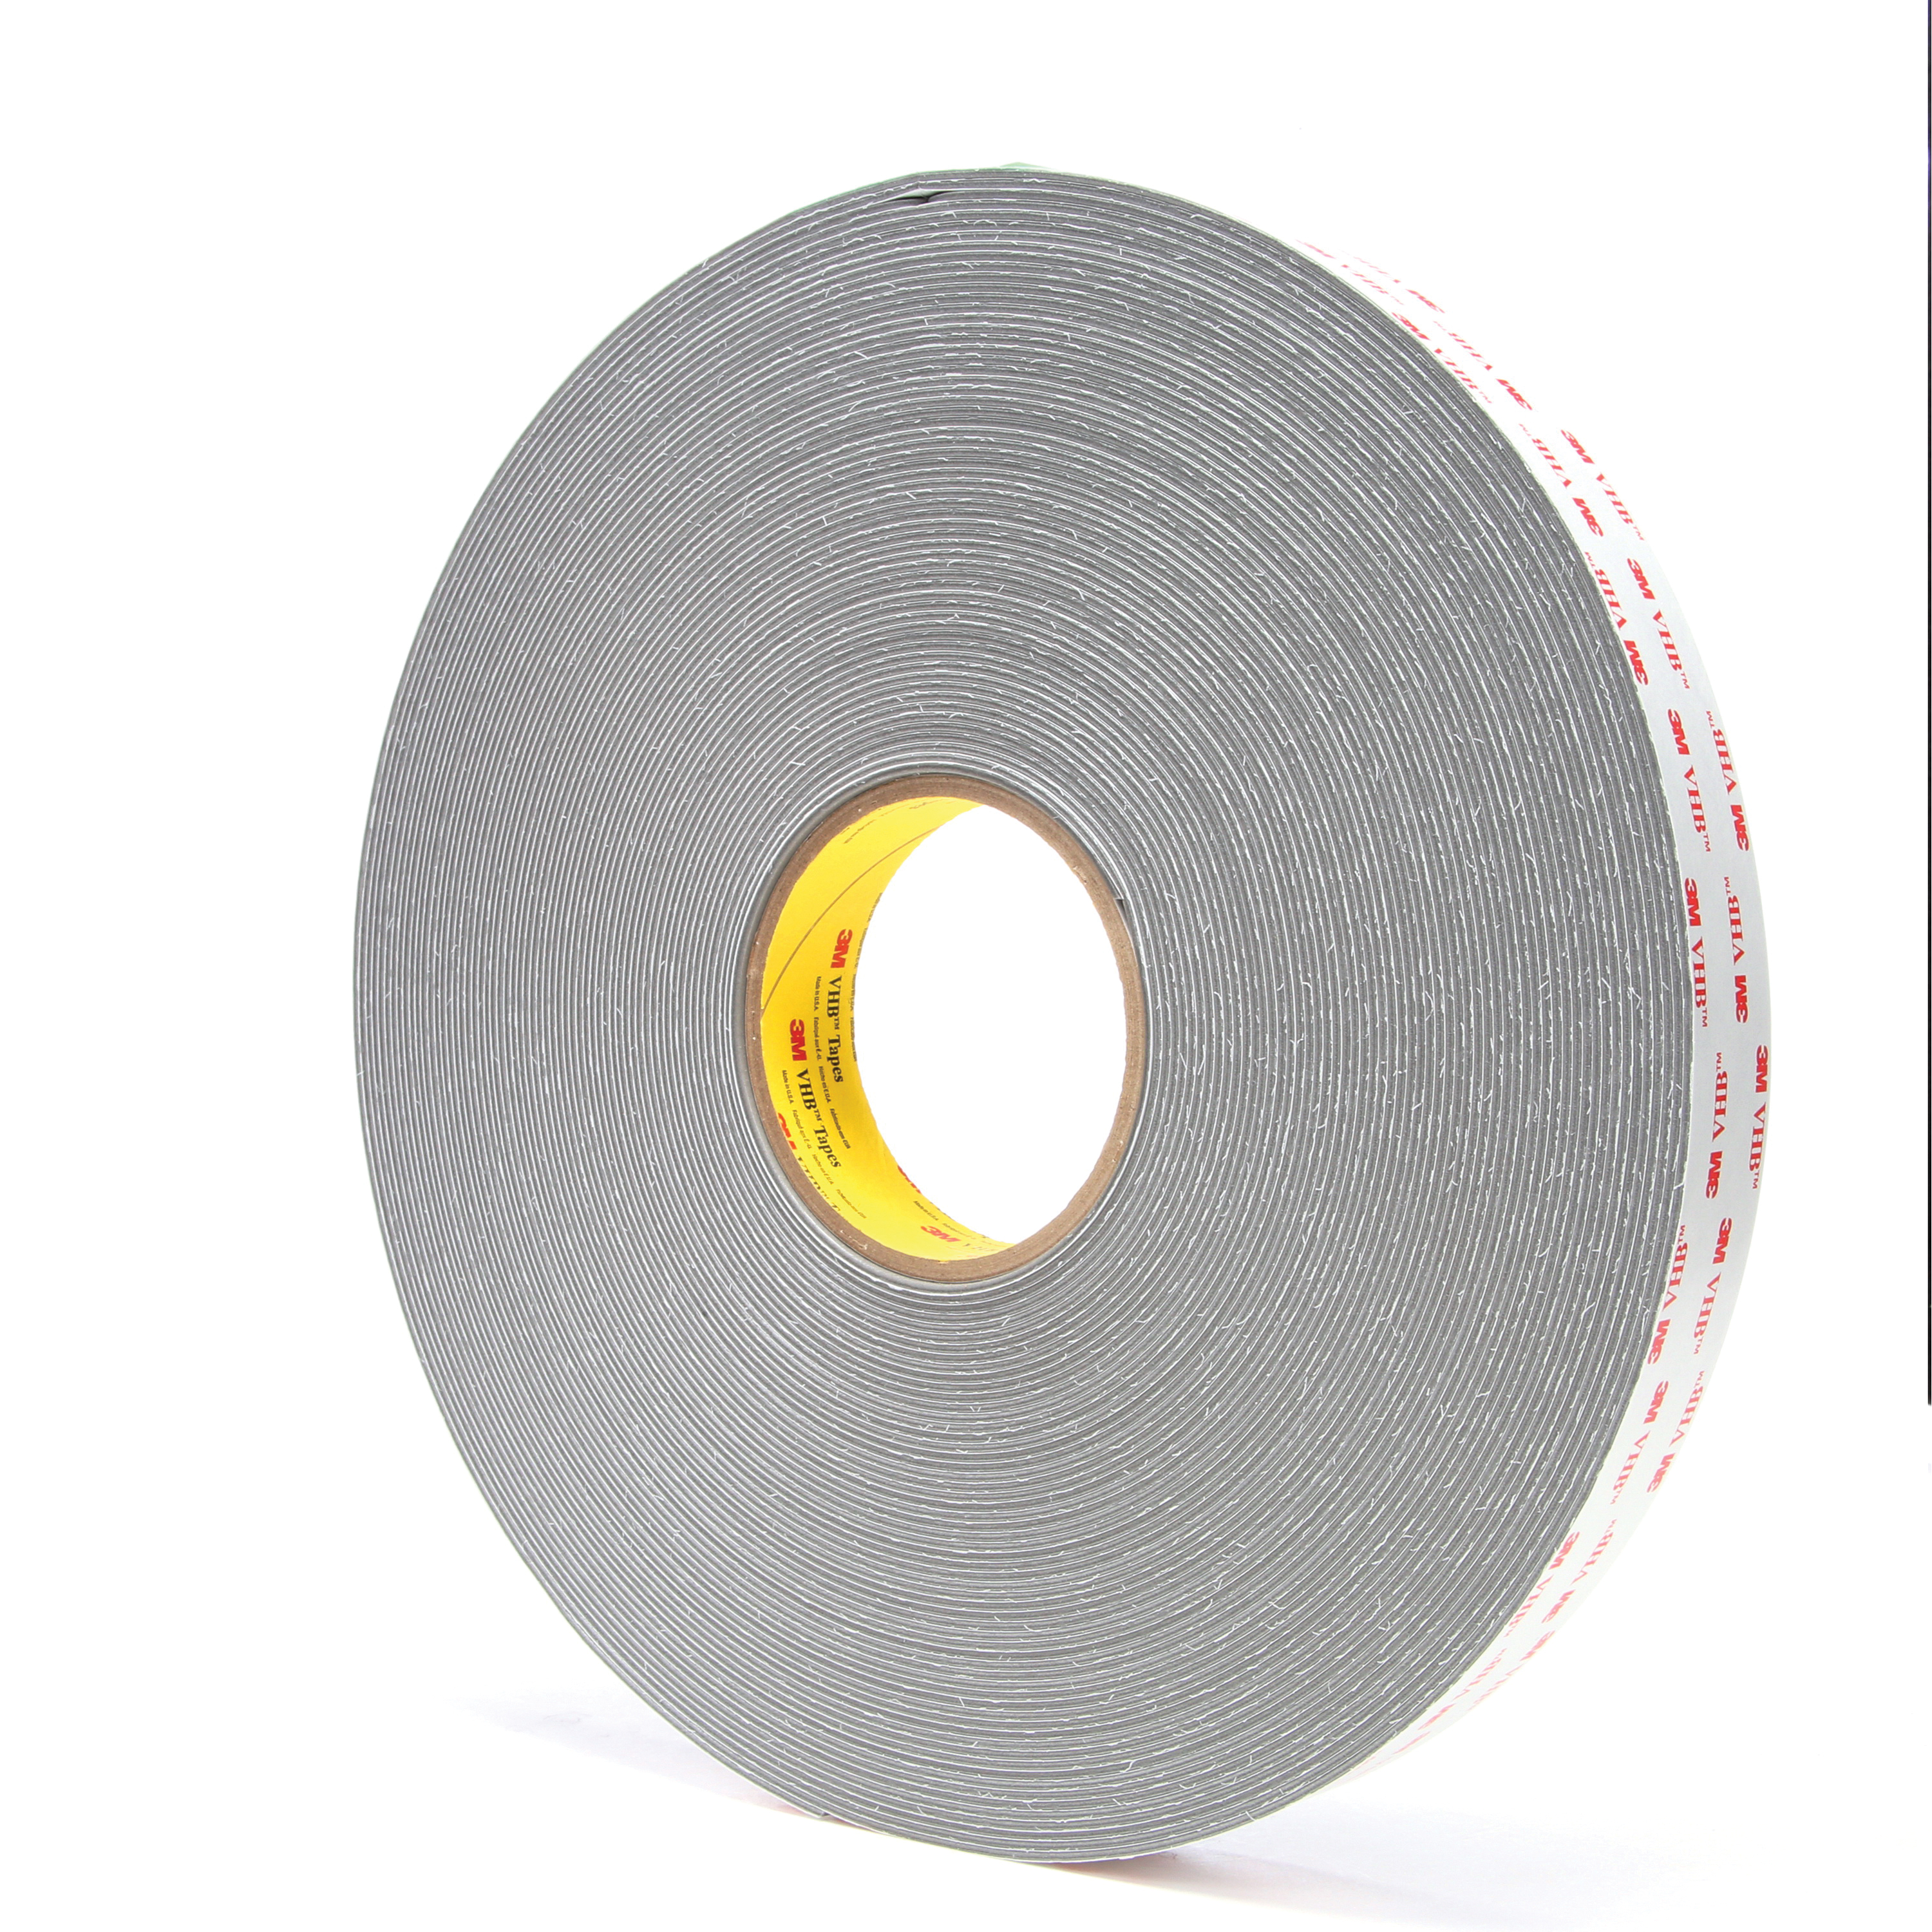 3M™ VHB™ 021200-24375 4956 Pressure Sensitive Film Tape, 36 yd L x 1 in W, 0.062 in THK, Multi-Purpose Acrylic Adhesive, Acrylic Foam Backing, Gray